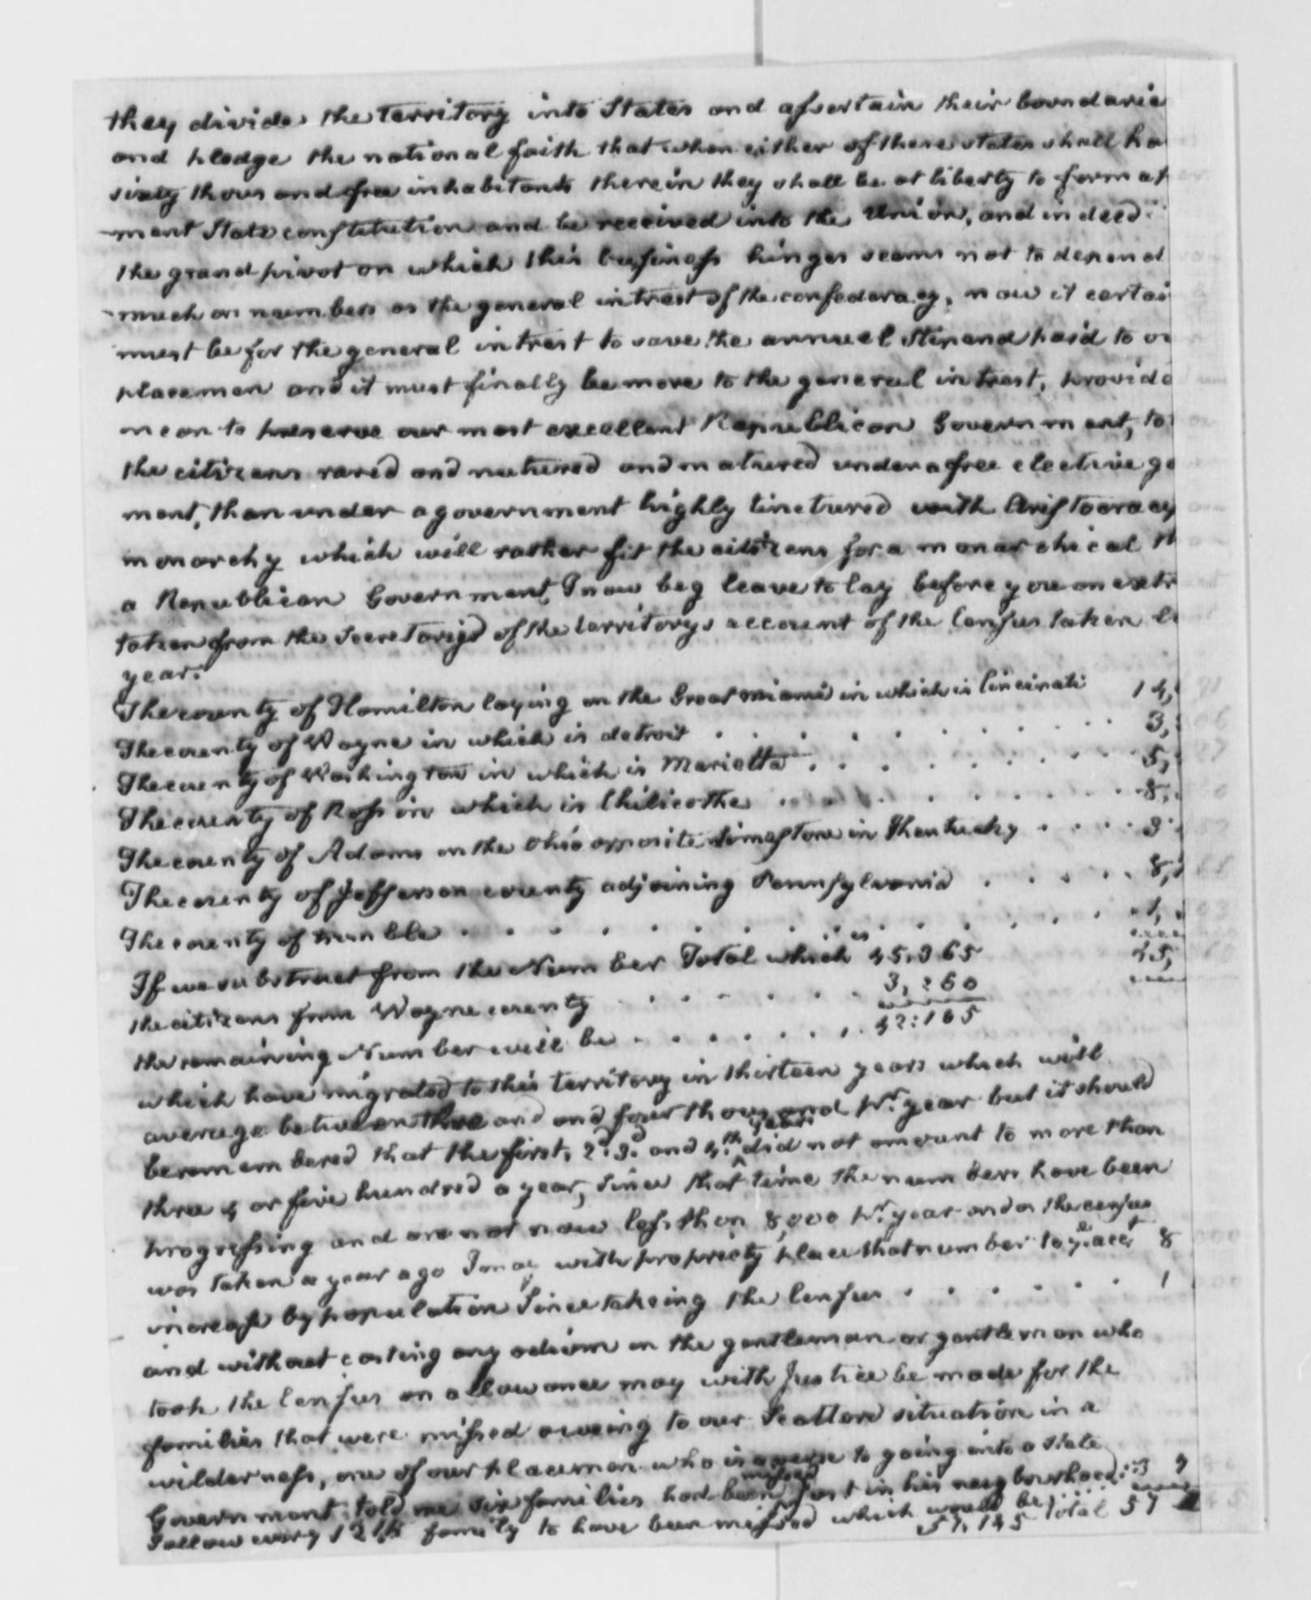 William Goforth to Thomas Jefferson, January 5, 1802, with Petition